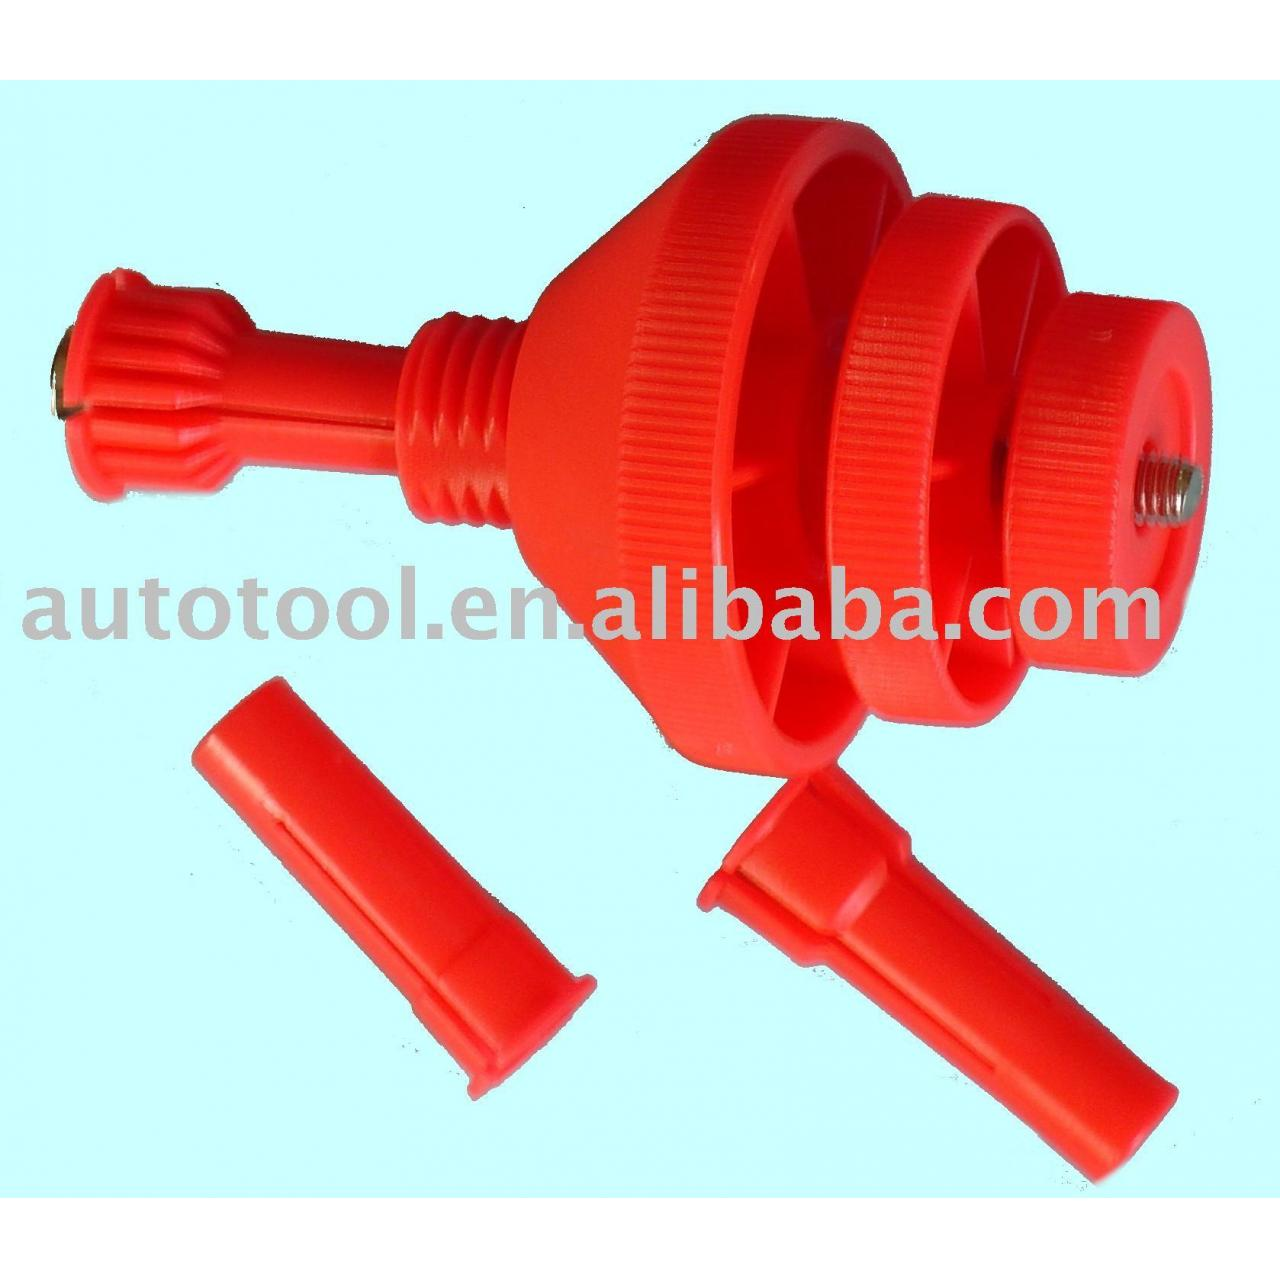 Buy cheap Engine Tool Universal Clutch Aligning Tool Universal Clutch Aligning Tool from wholesalers